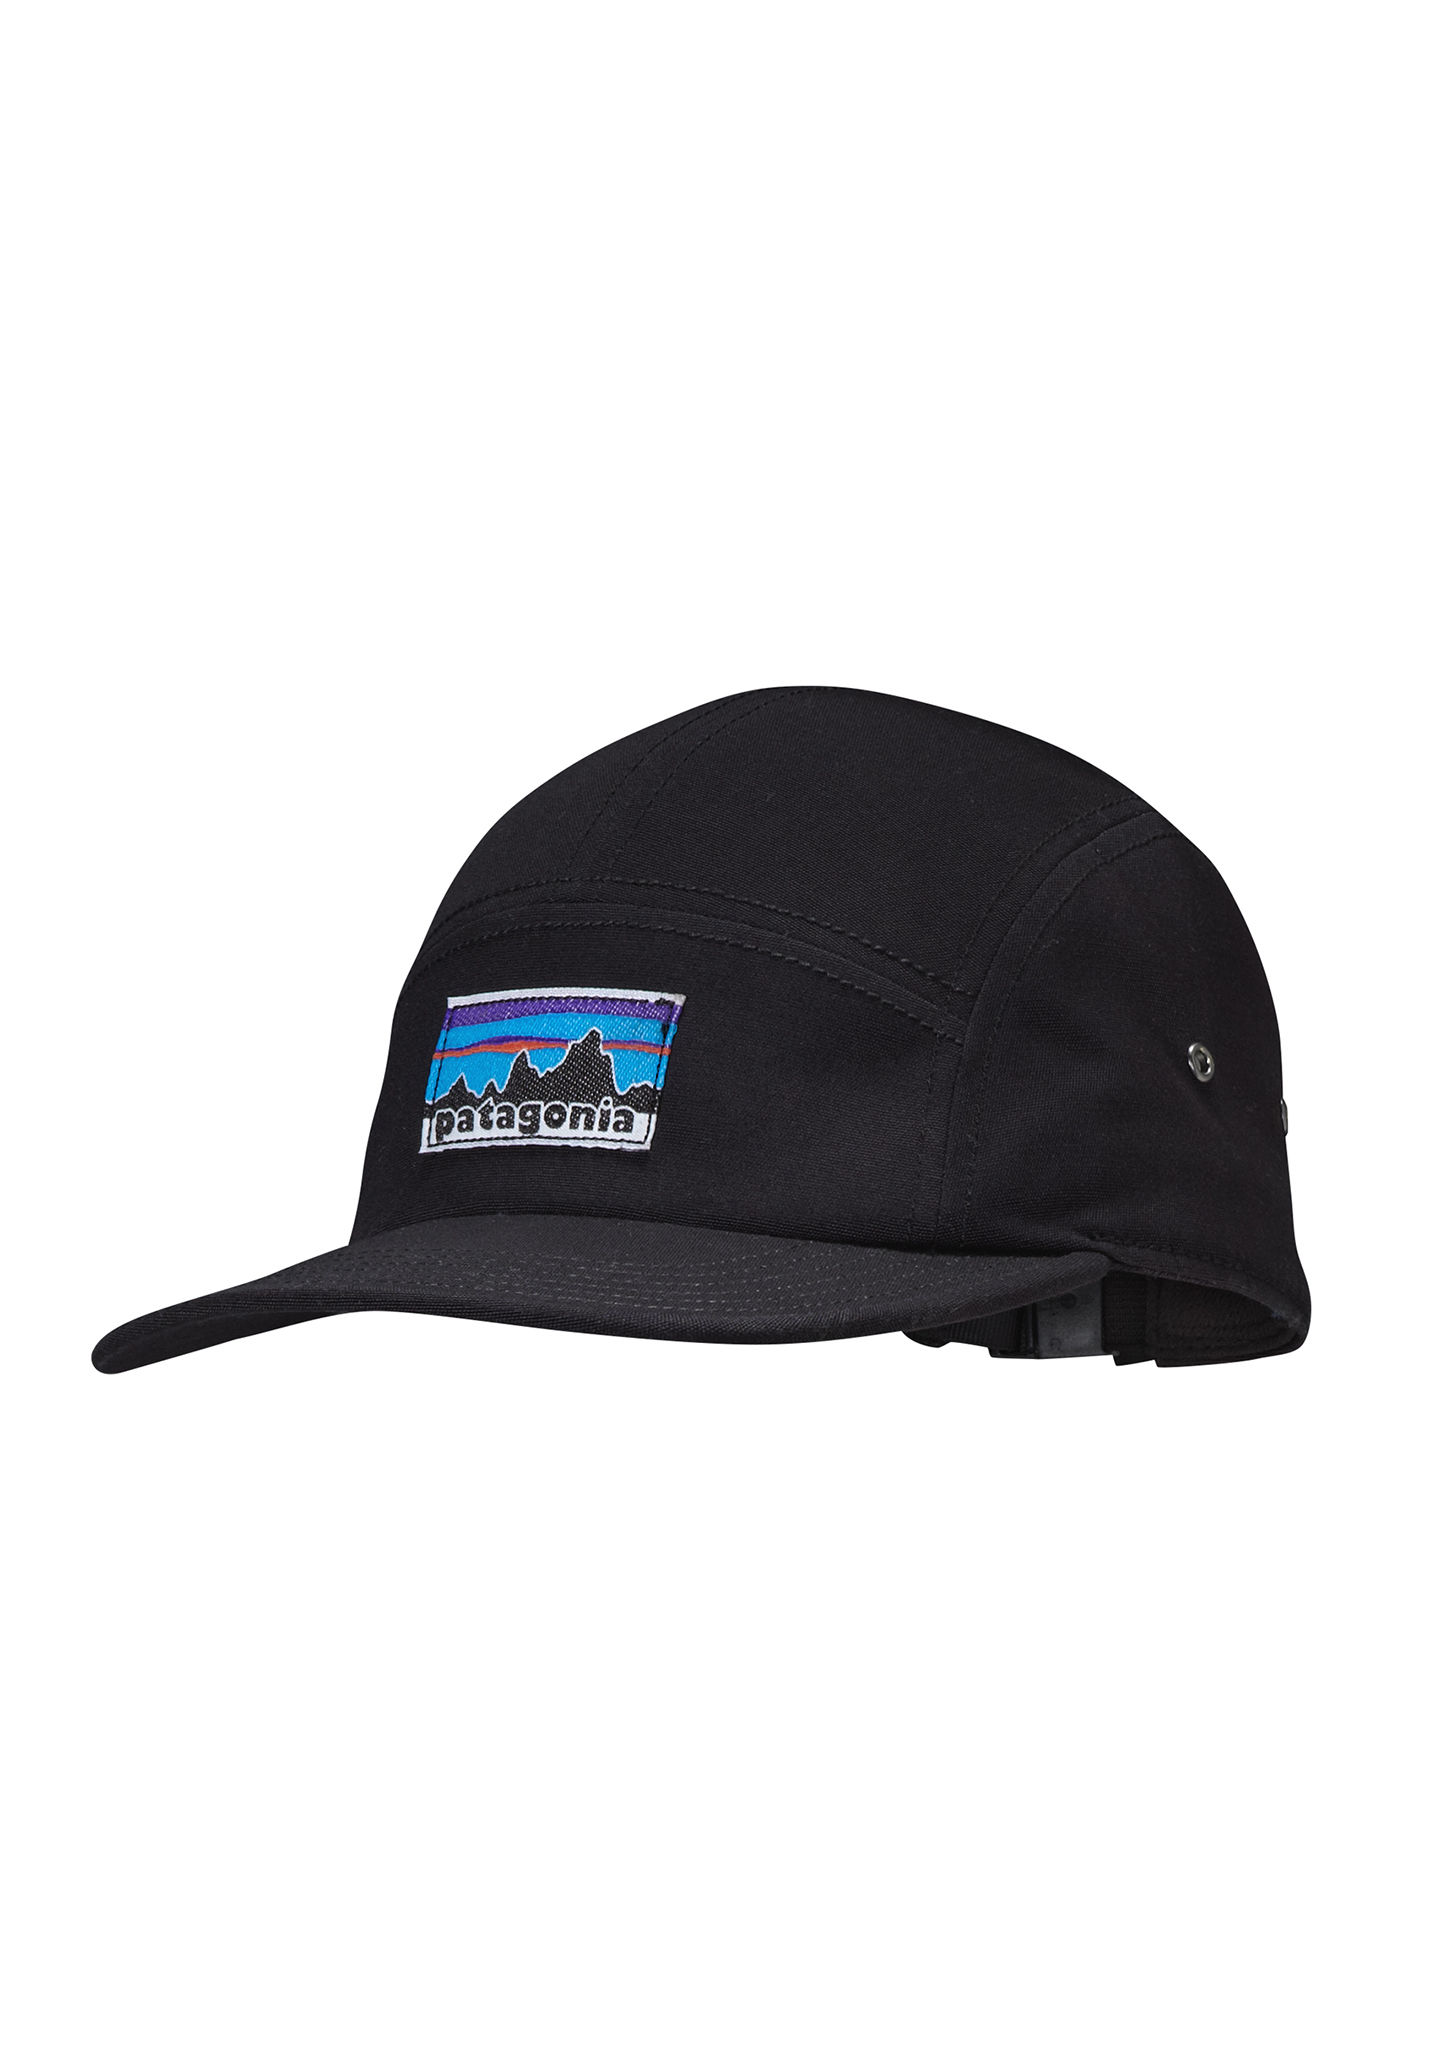 PATAGONIA Retro Fitz Roy Label Tradesmith - Trucker Cap - Black - Planet  Sports 46c95596d36